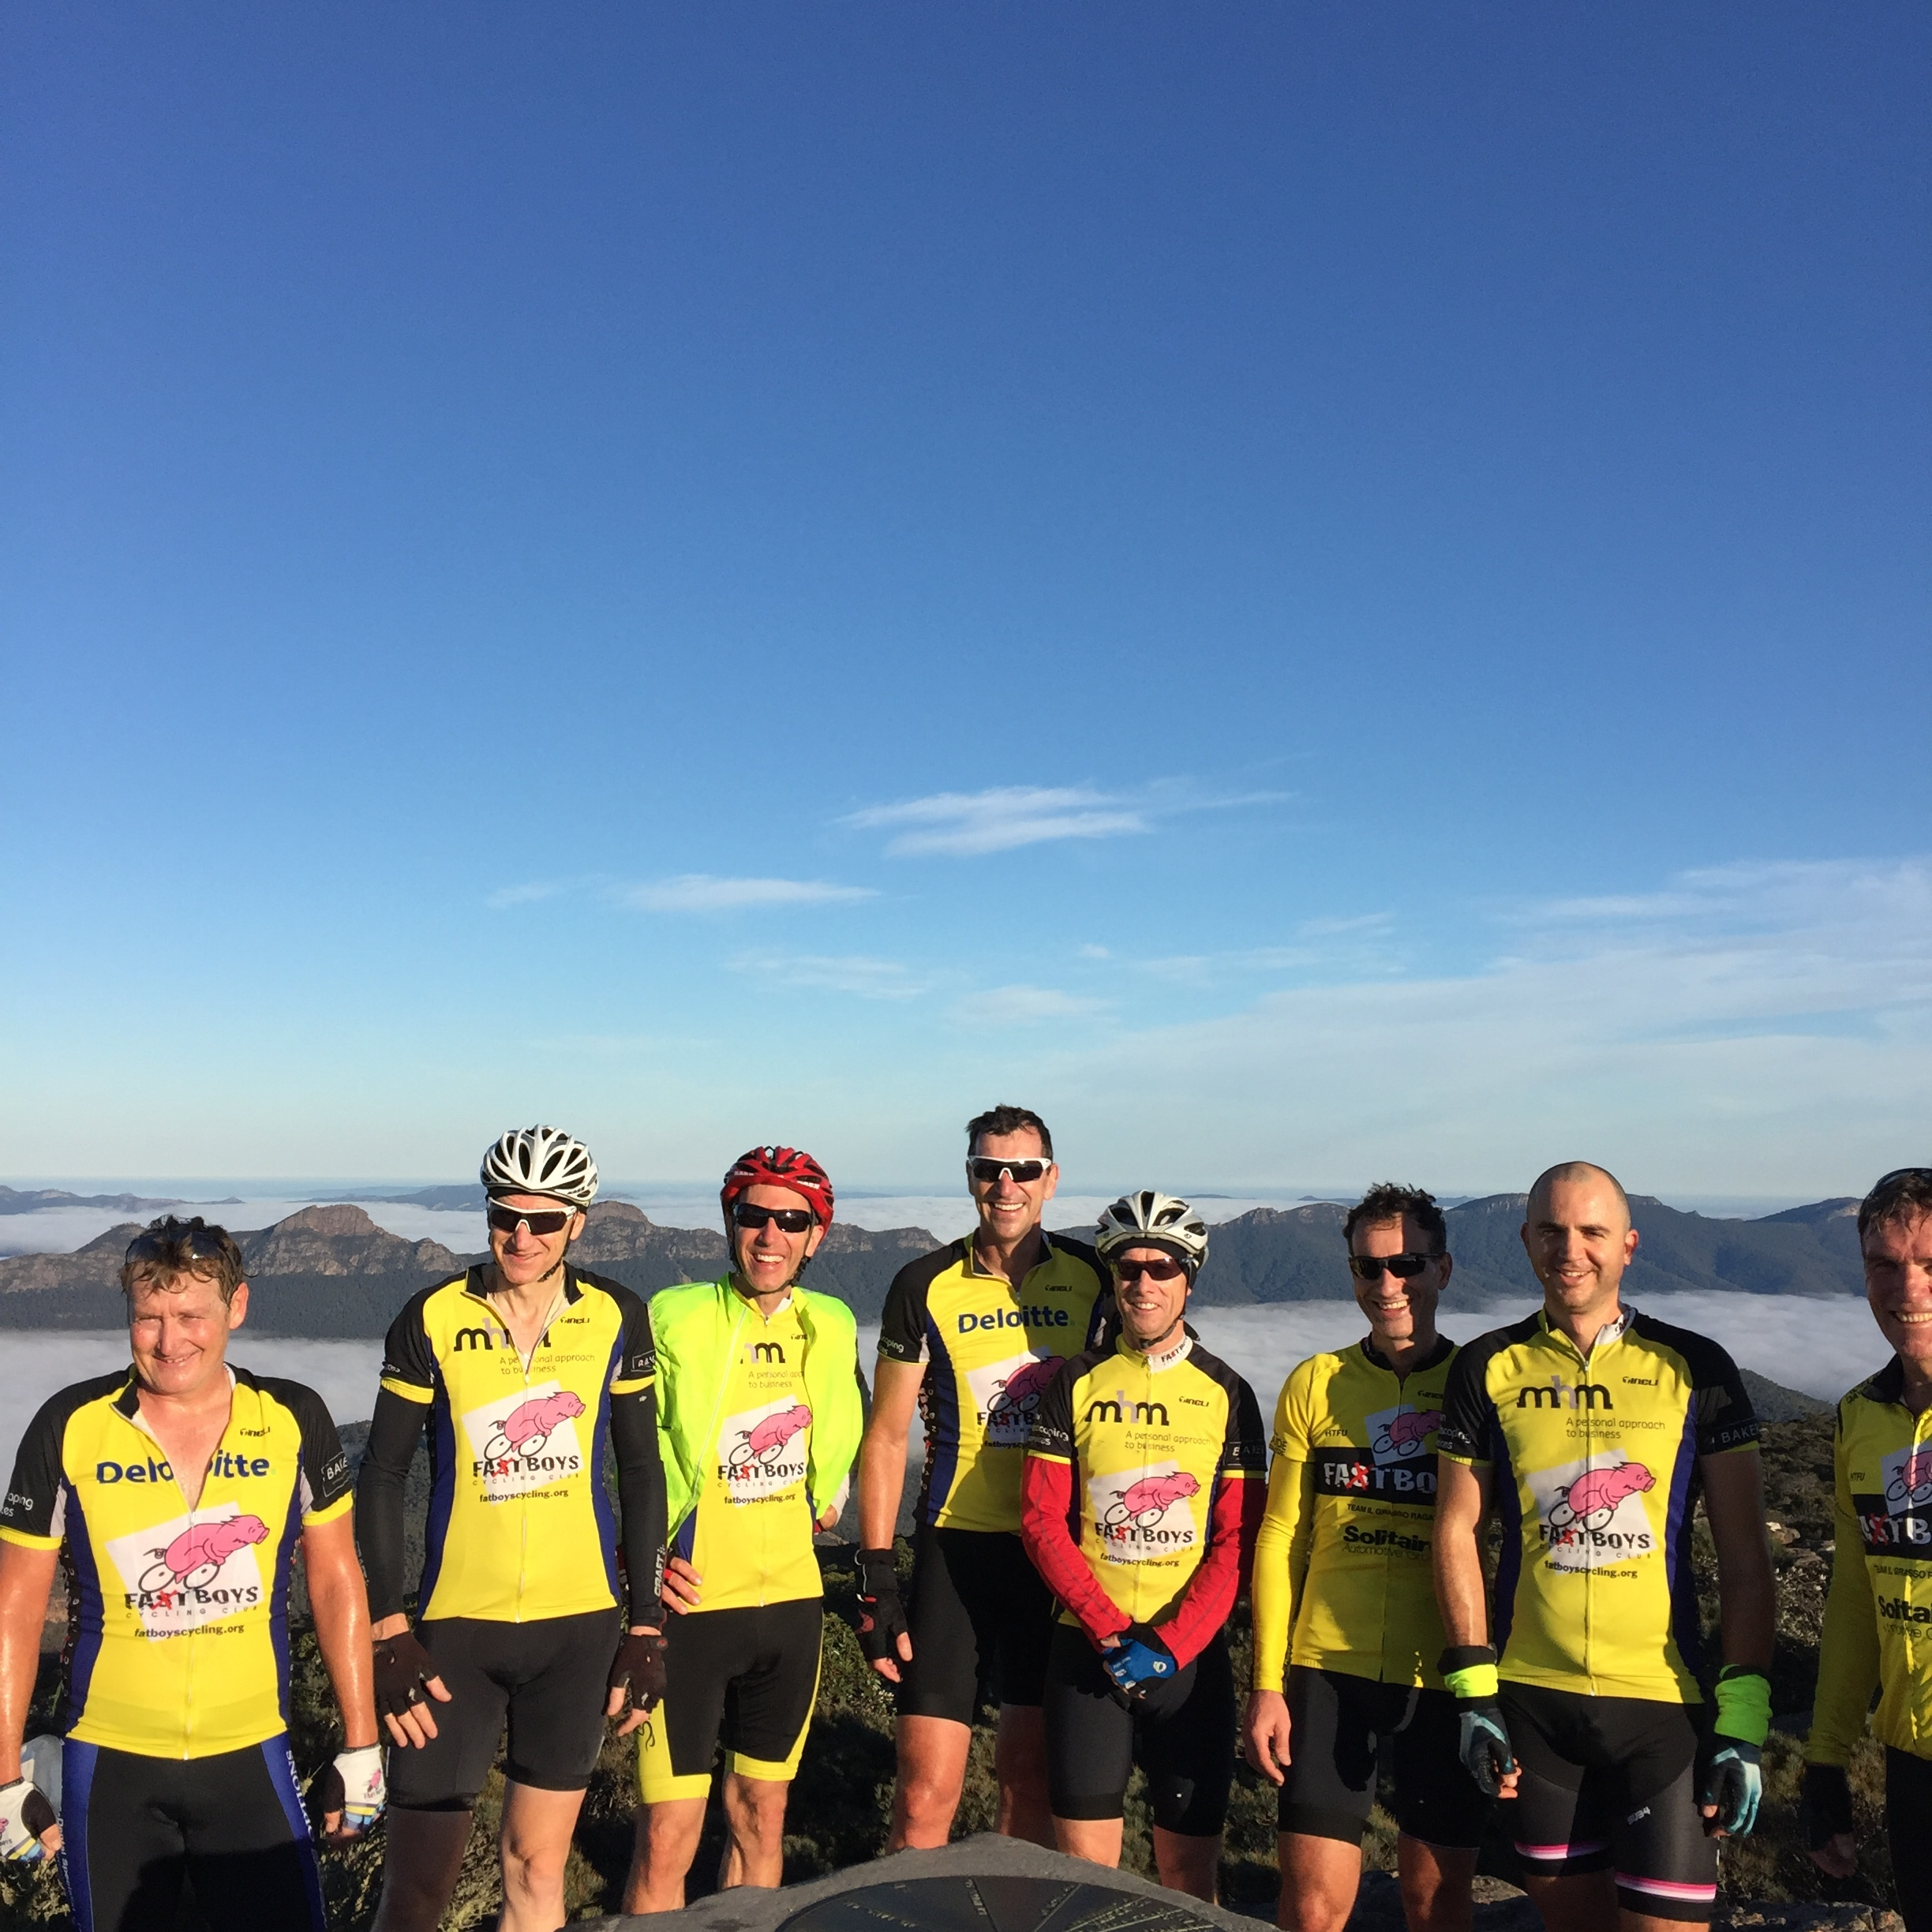 Justin Lang from the Adelaide Fat Boys cycling club talks to Drive about his struggles with his mental health and how cycling pulled him through.